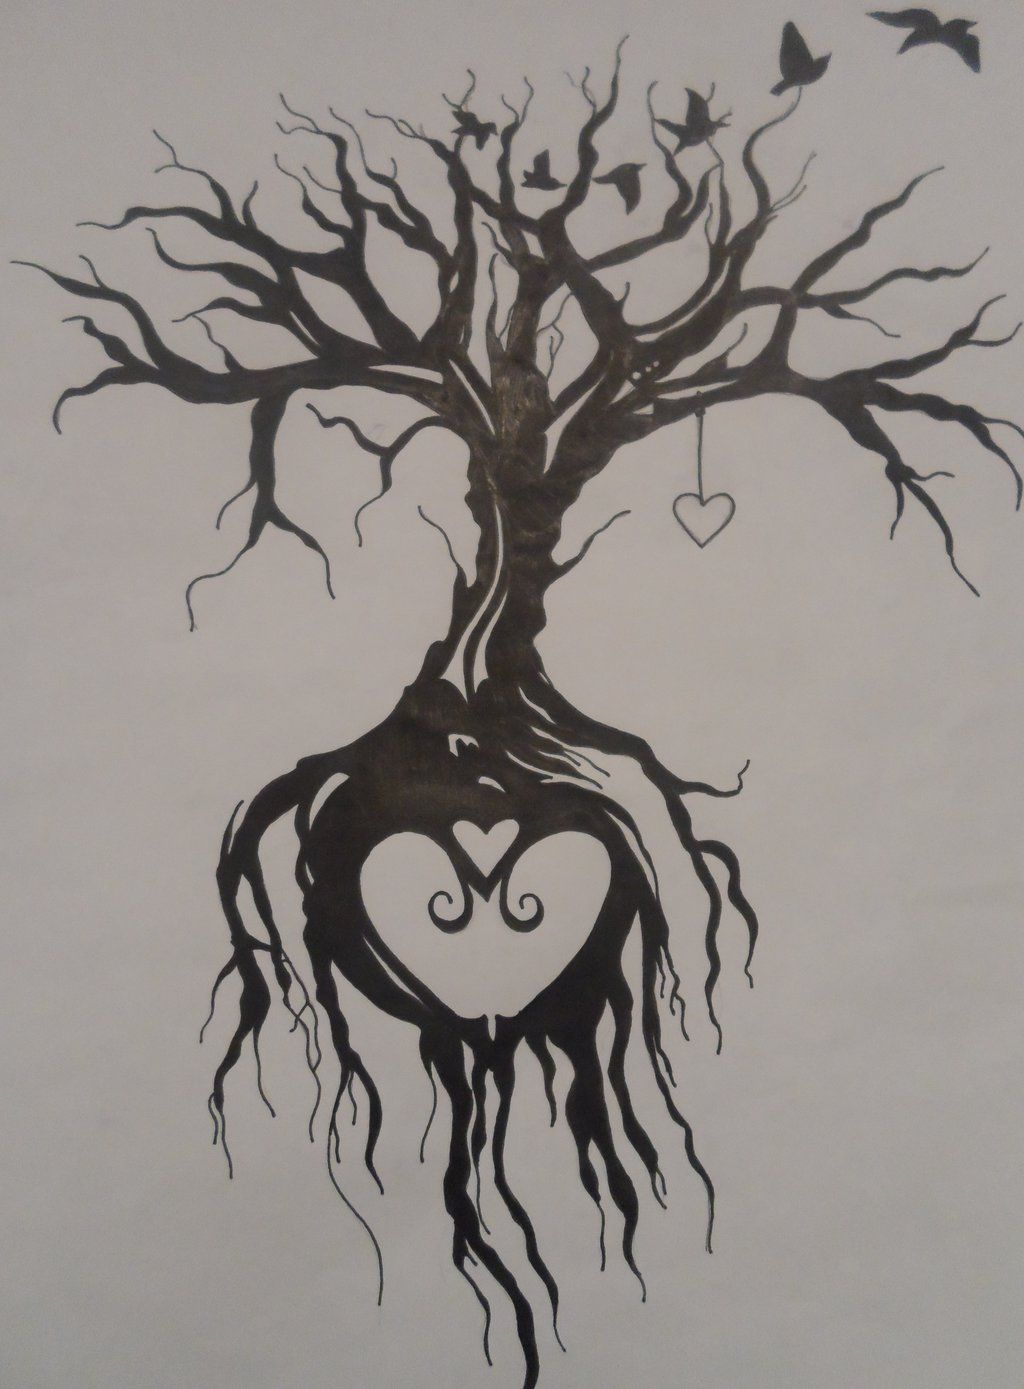 Tree Of Life Tattoo With Heart Roots: Tree Of Life Tattoo By EmmyBunny.deviantart.com On